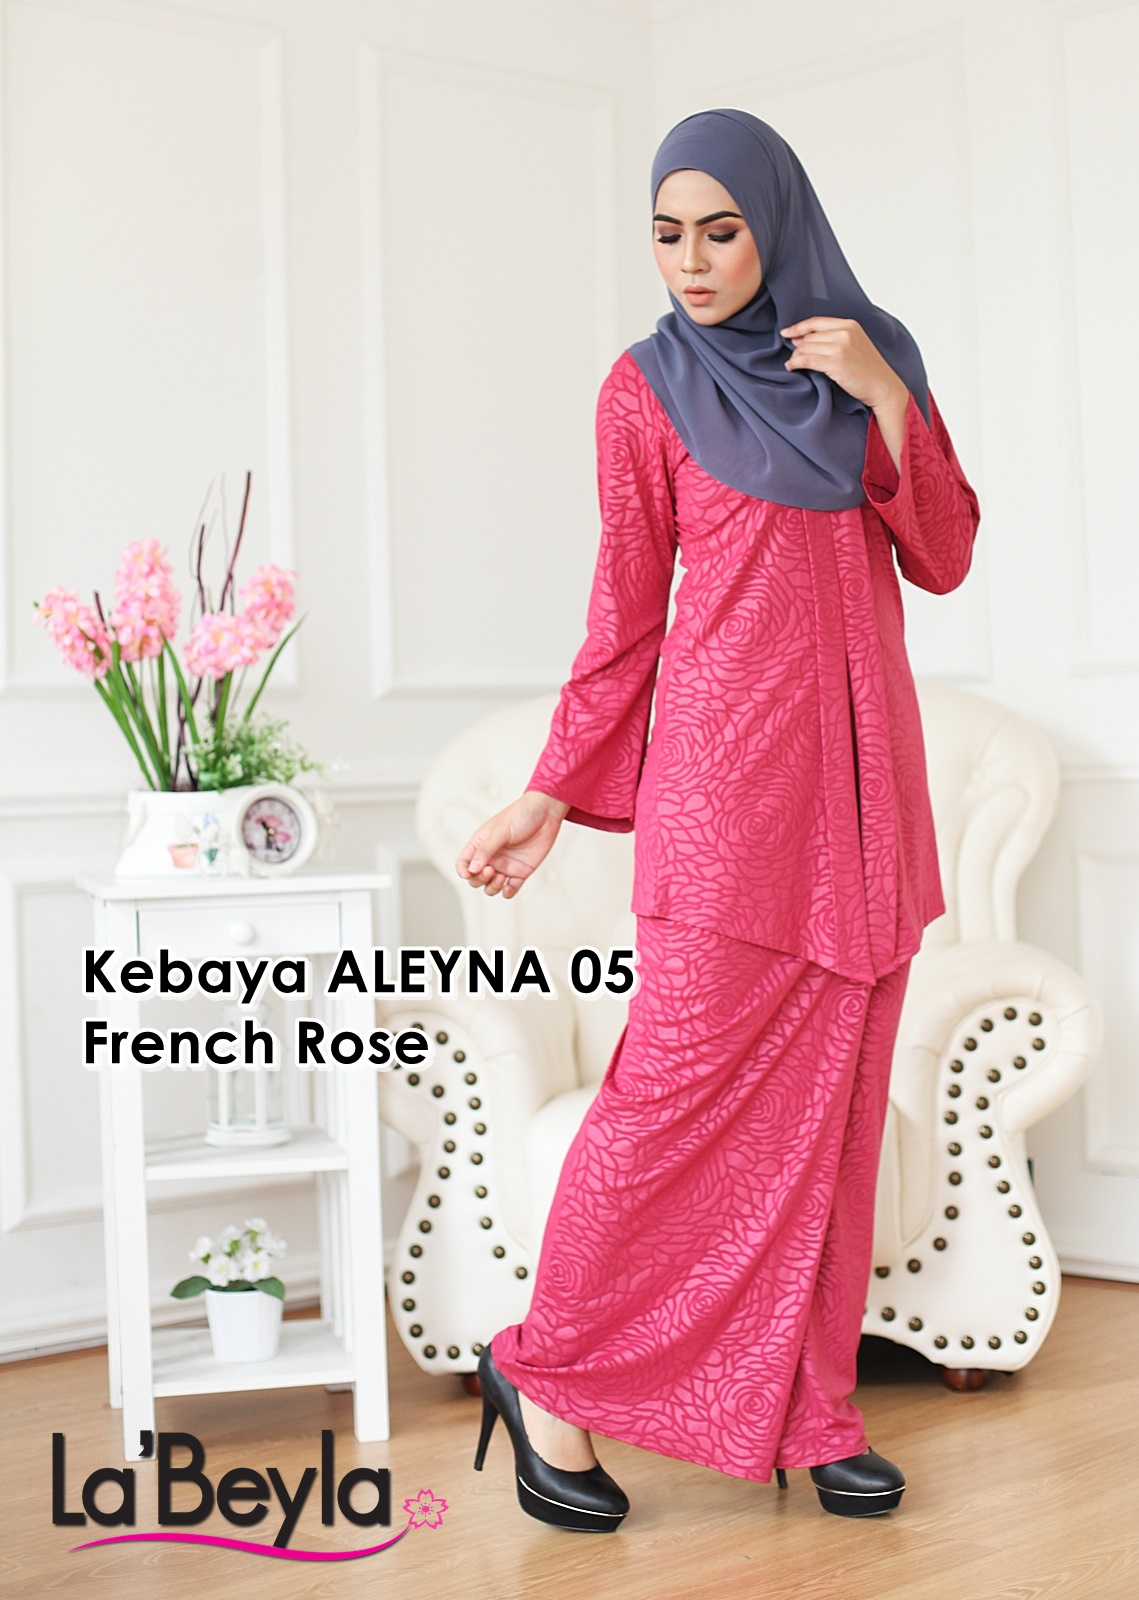 Kebaya Aleyna 05 - French Rose